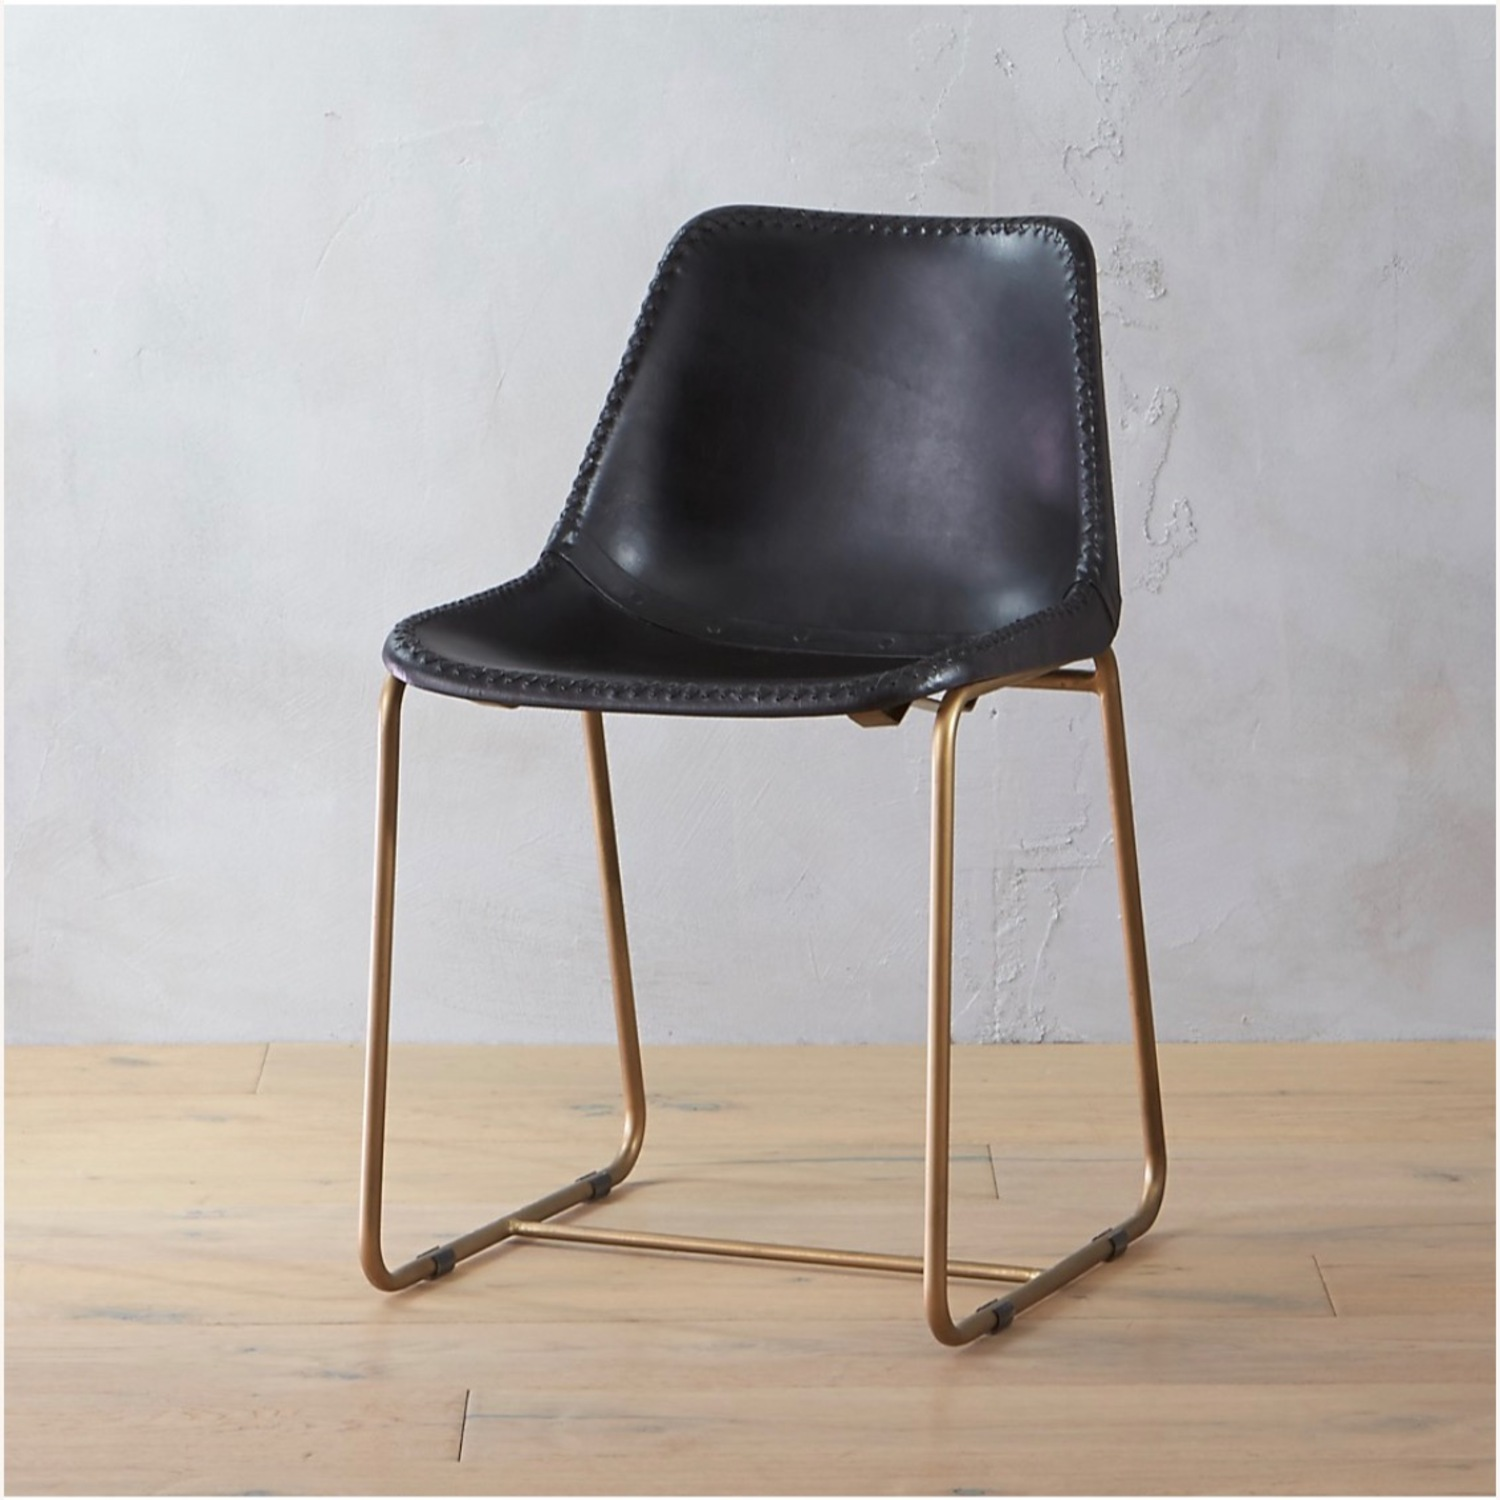 CB2 Roadhouse Black Leather Dining Chairs - image-1